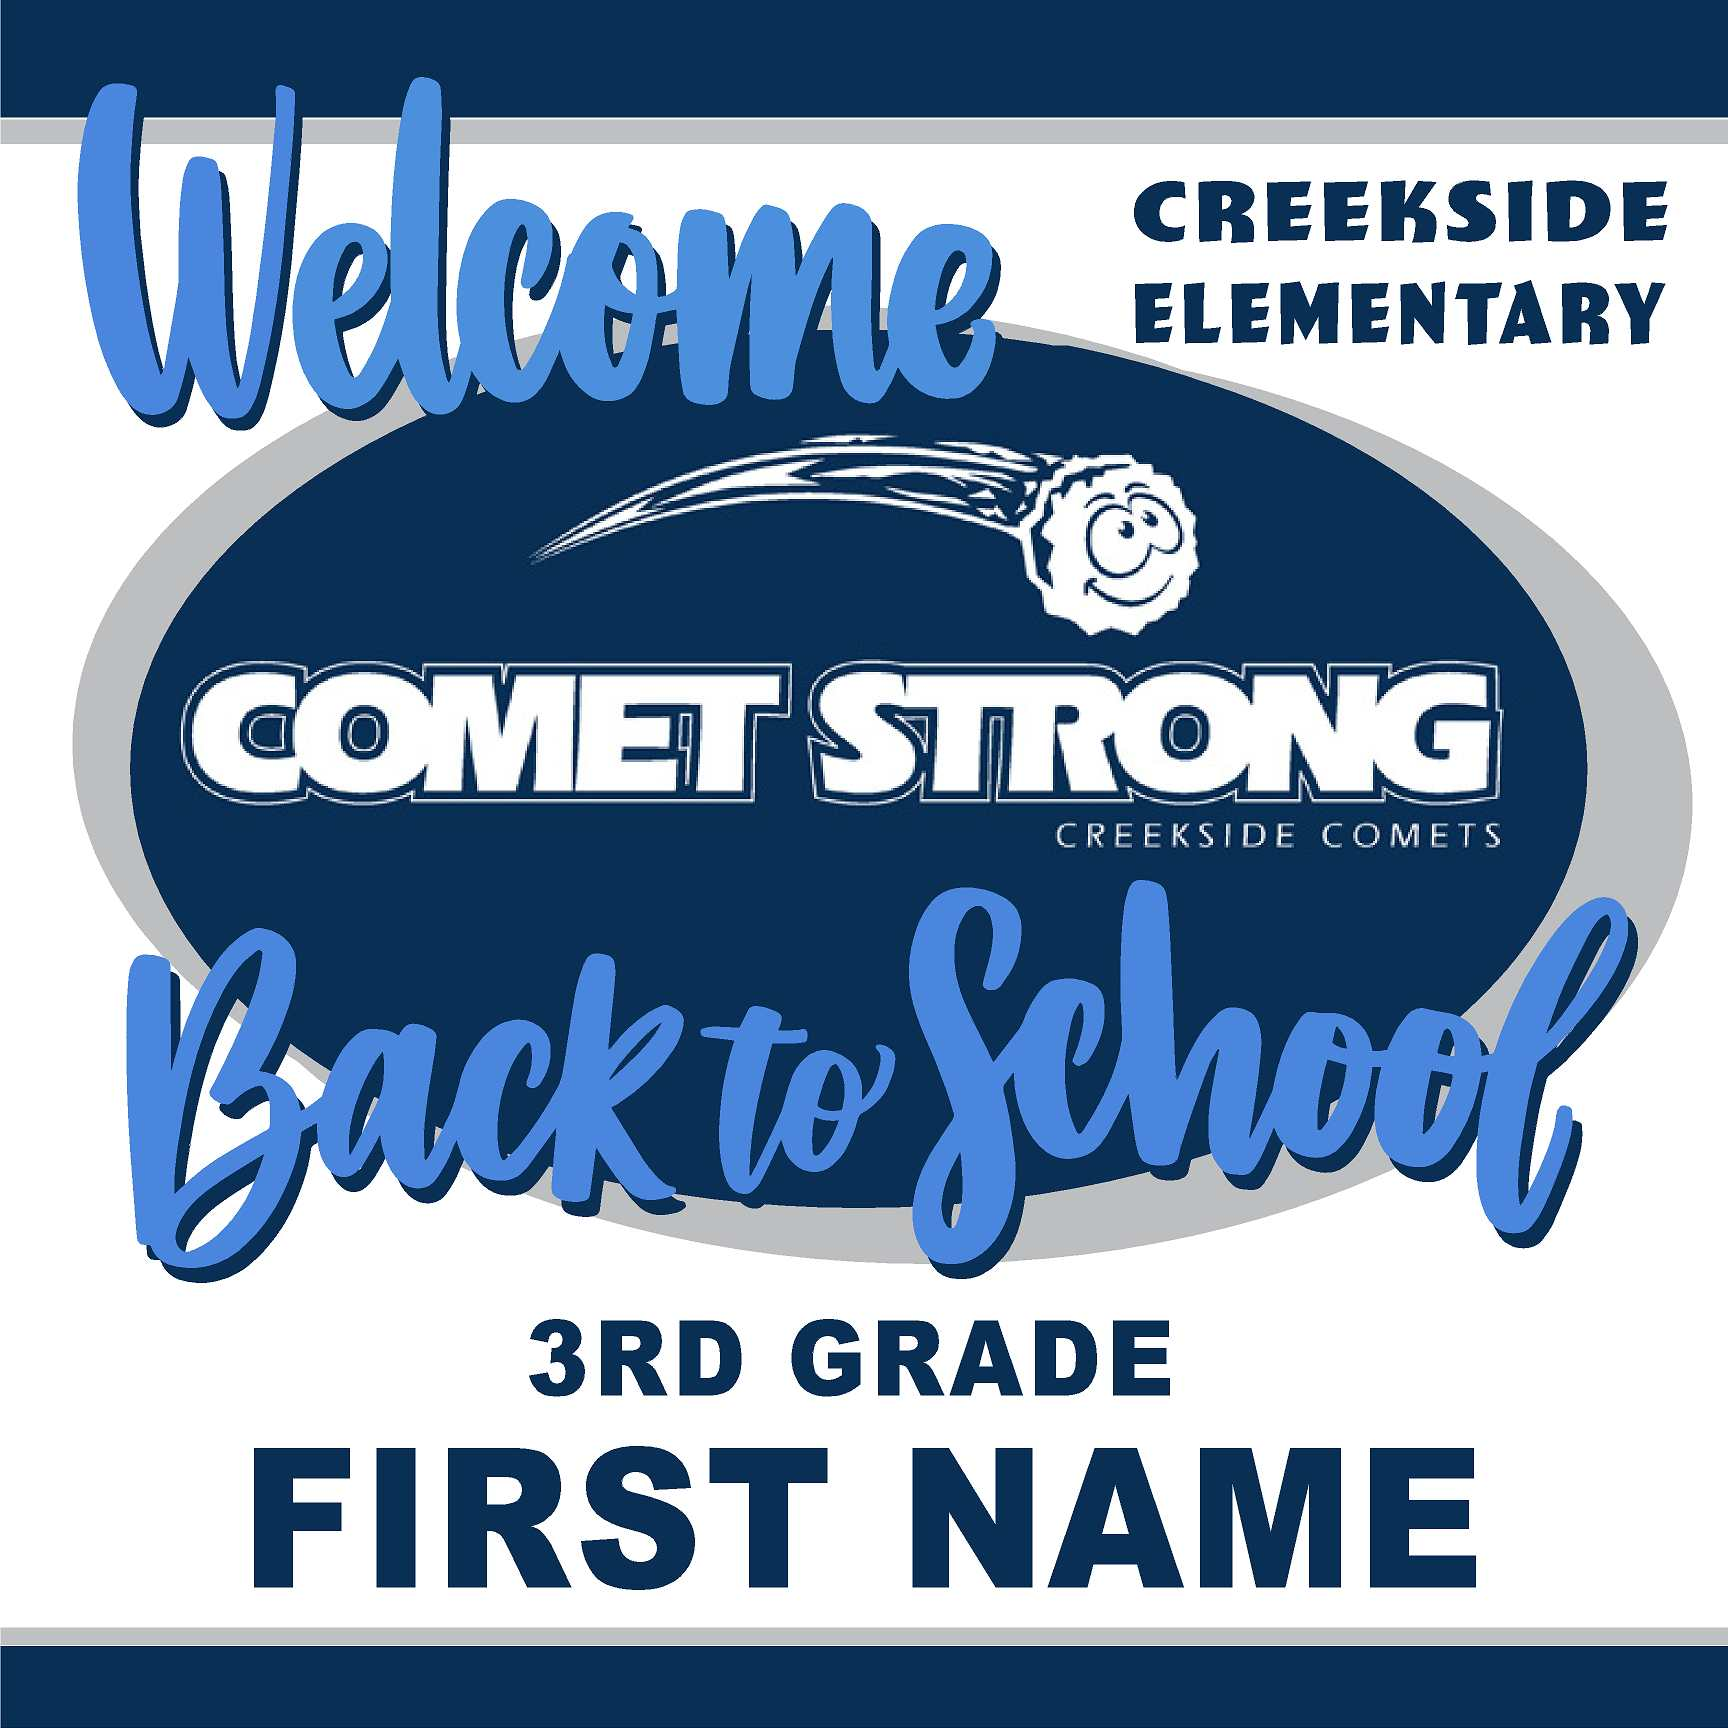 Welcome back to school!  Creekside Elementary 3rd Grade 24x24 Yard Sign (includes installation in your yard)